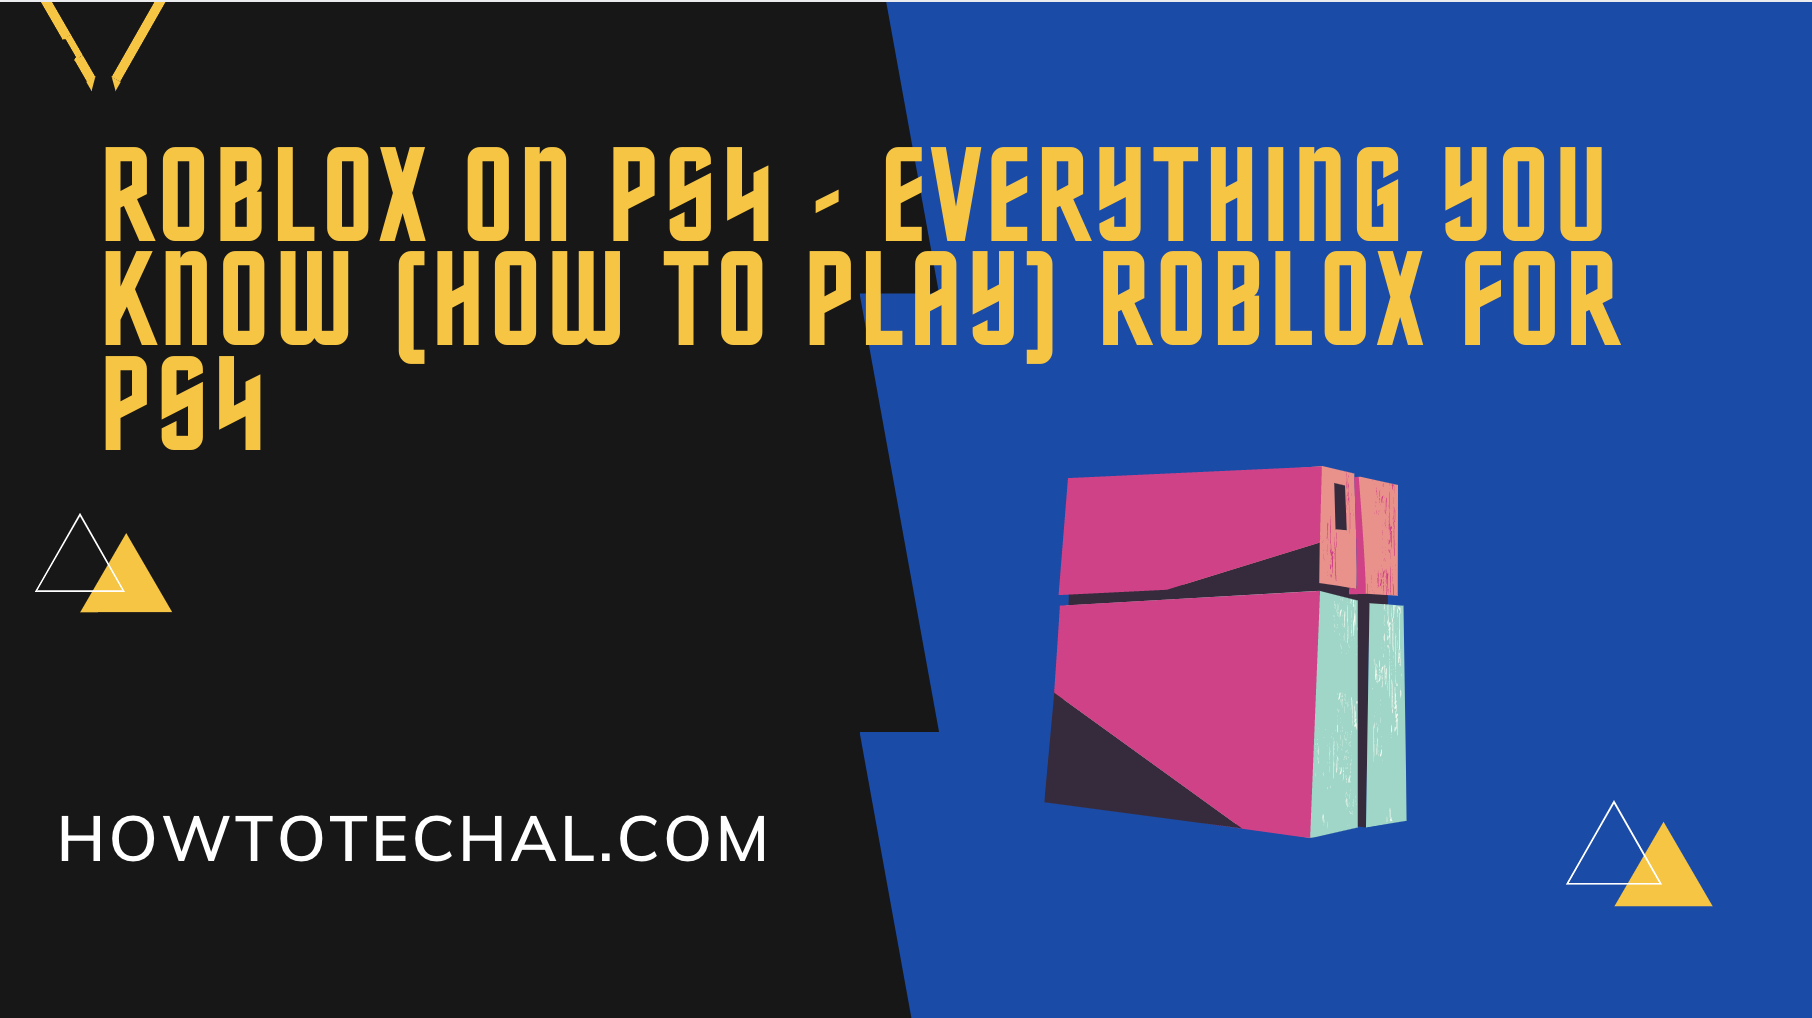 Roblox on PS4 – Everything You know (How to Play) Roblox for PS4